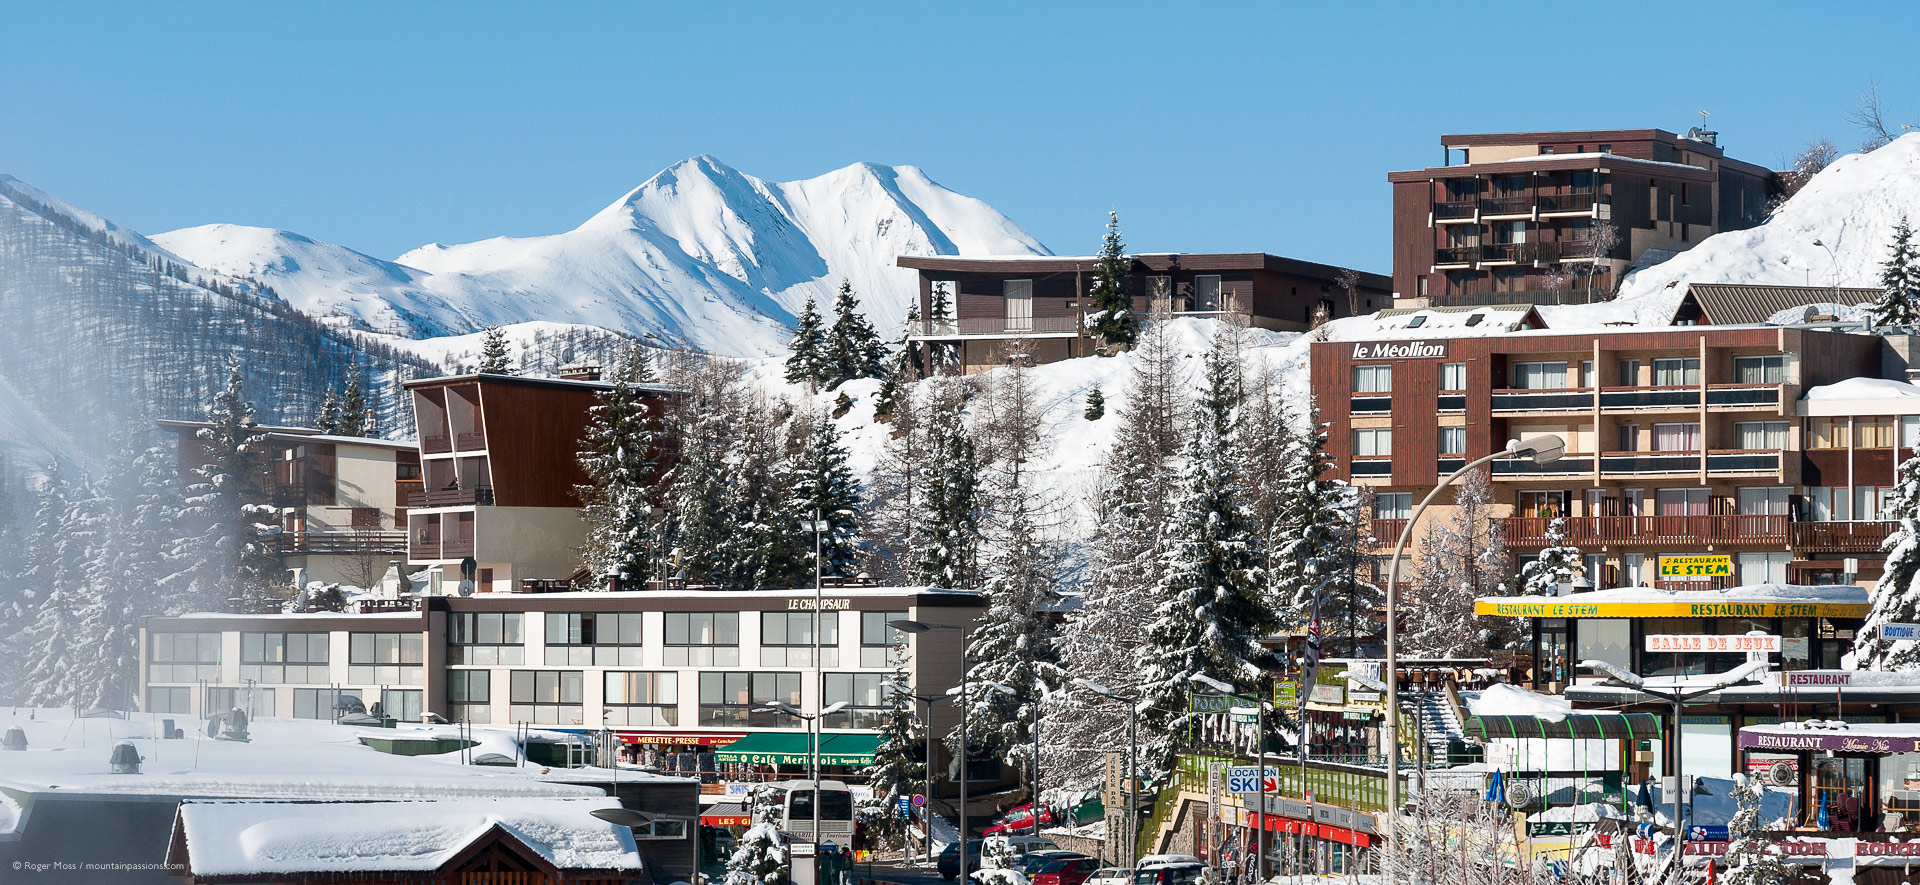 Side view of ski village with snow-covered trees and mountains